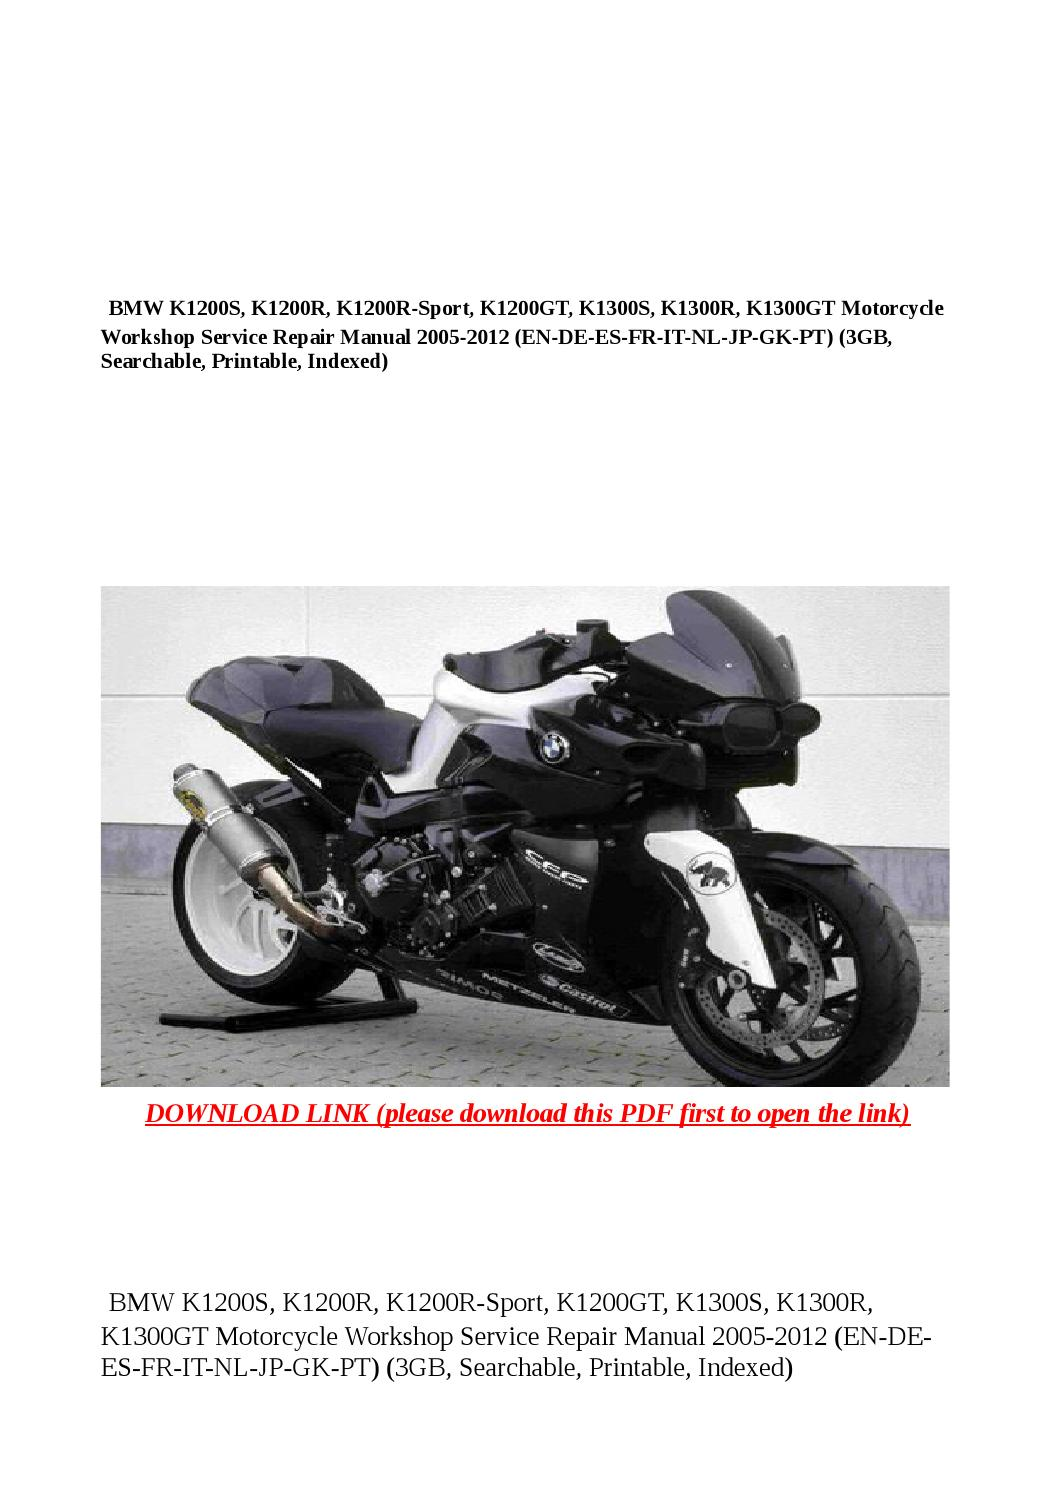 Bmw k1200s, k1200r, k1200r sport, k1200gt, k1300s, k1300r, k1300gt  motorcycle workshop service repai by Anna Tang - issuu